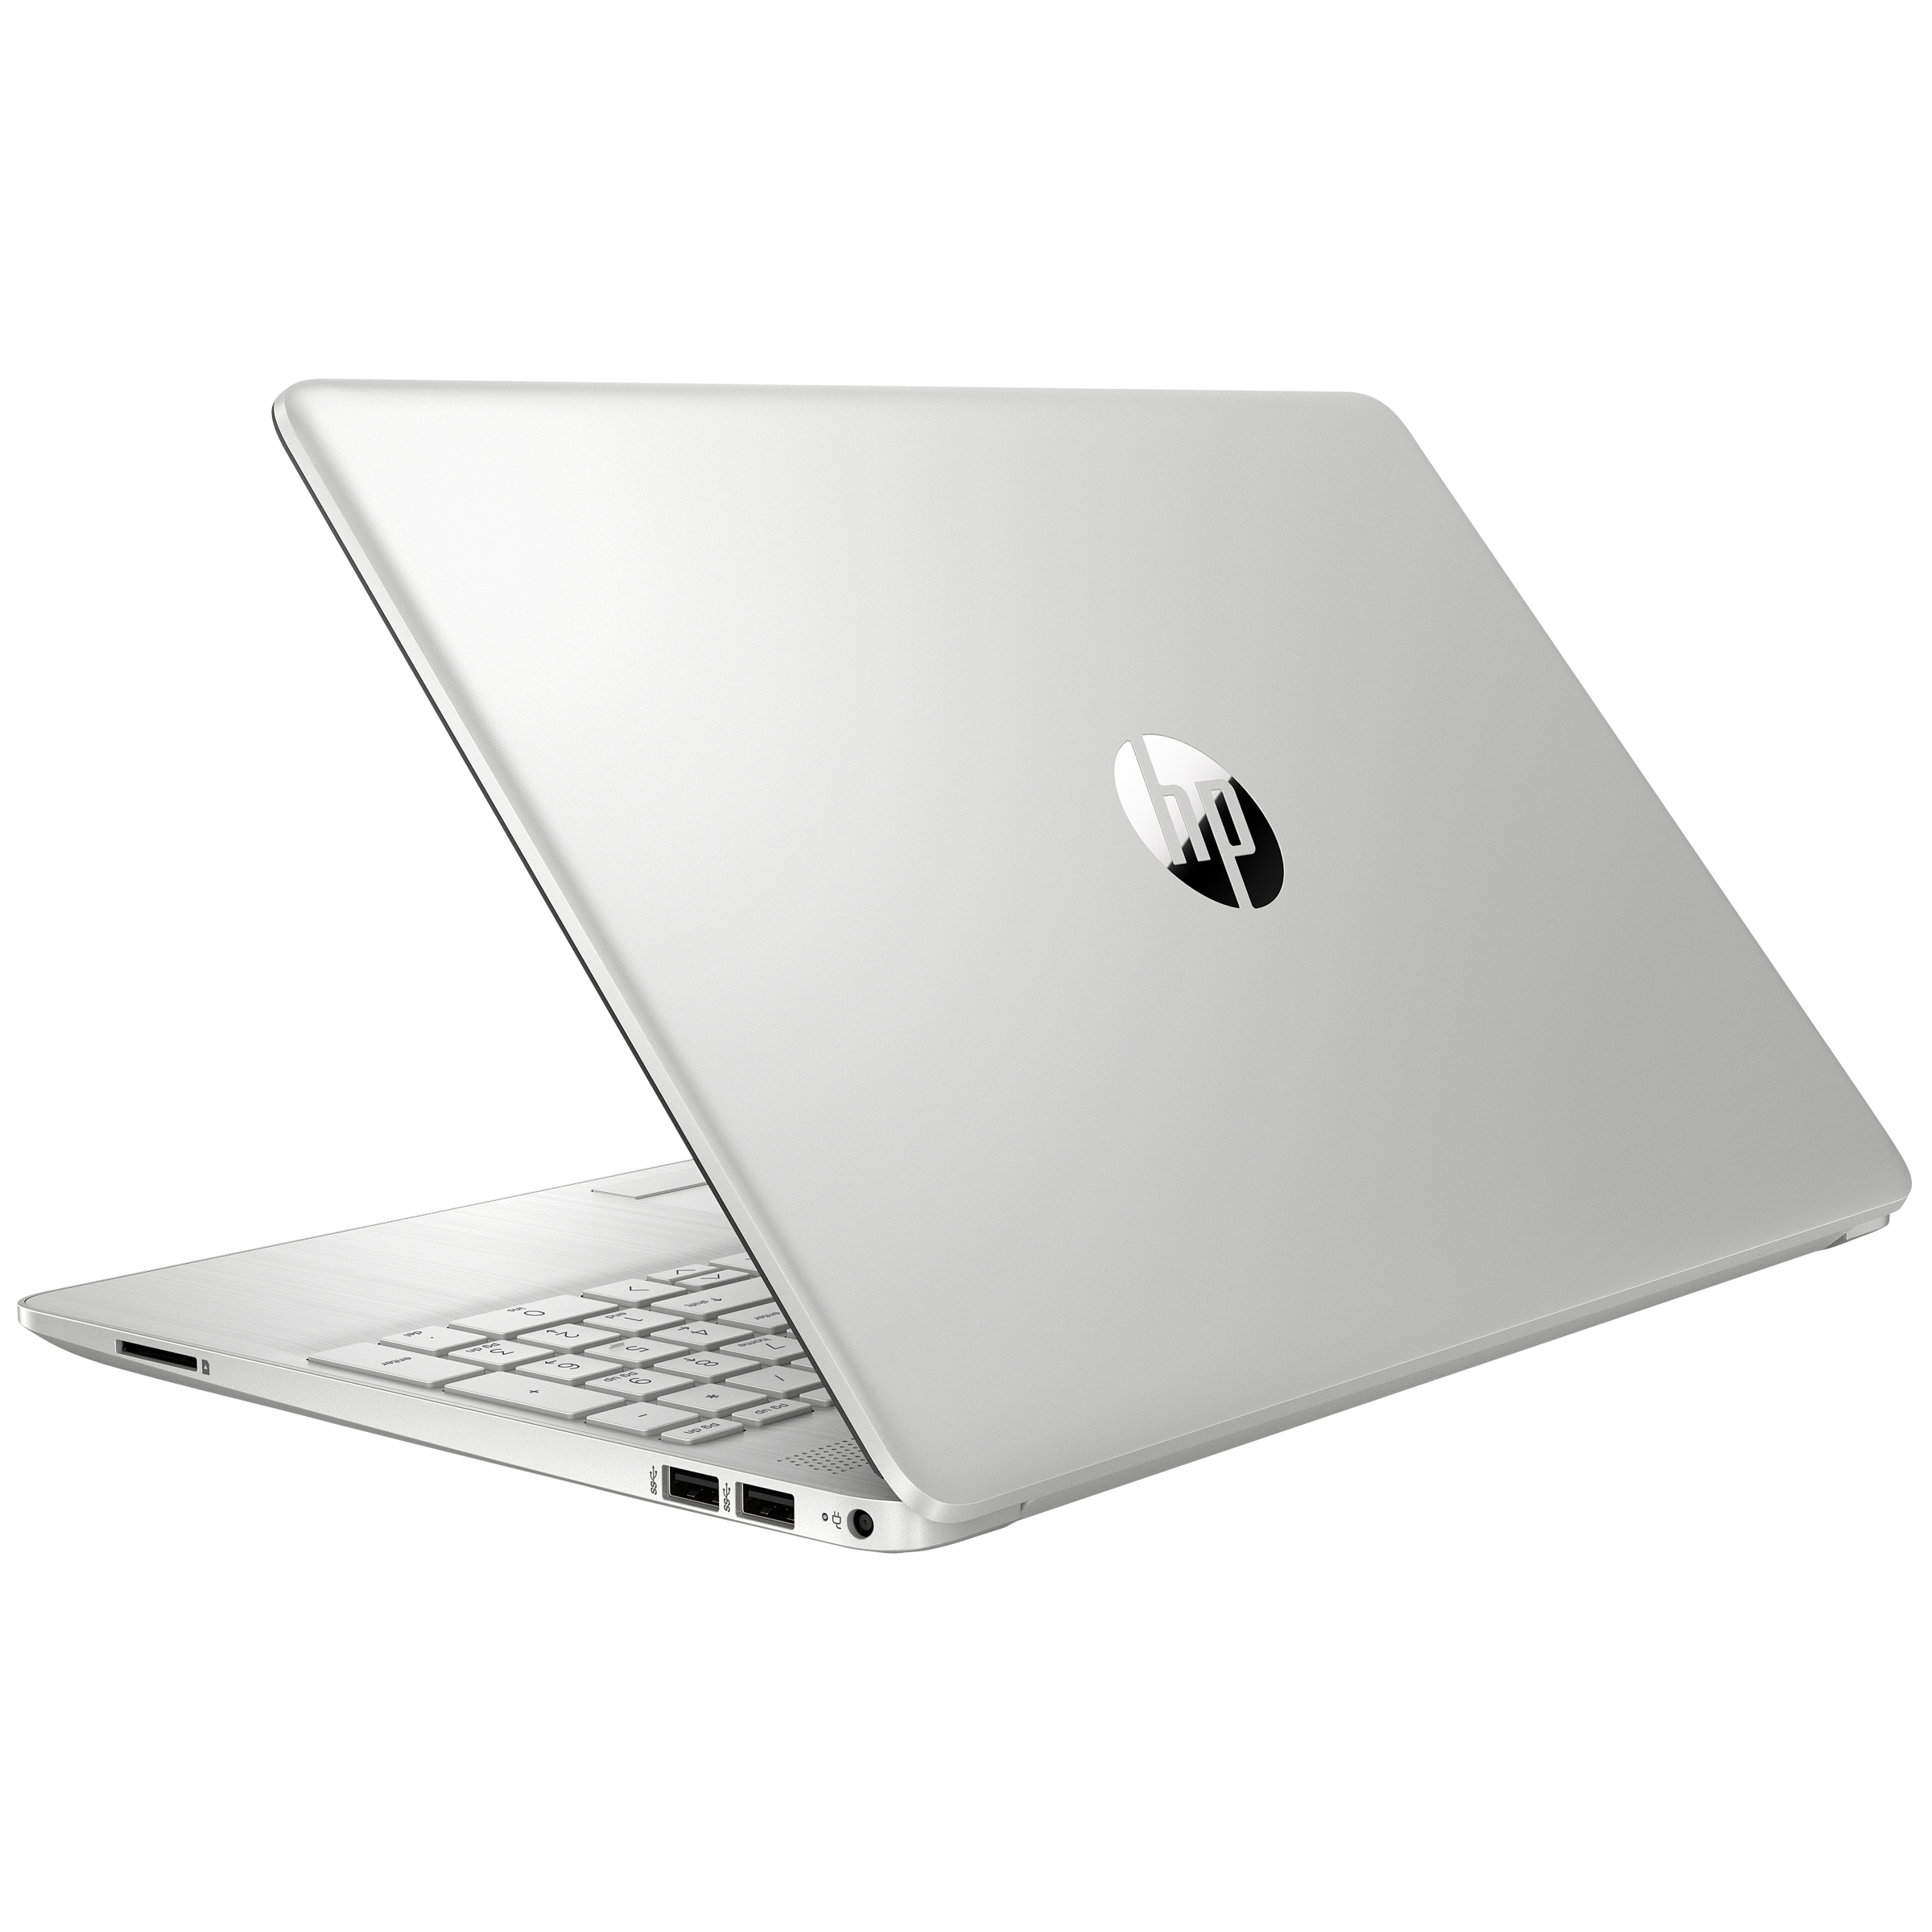 HP 15s-dr3001TU (34W43PA#ACJ) Core i3 11th Gen Windows 10 Home Thin and Light Laptop (8GB RAM, 1TB HDD, Intel UHD Graphics, 39.6cm, Natural Silver) 5